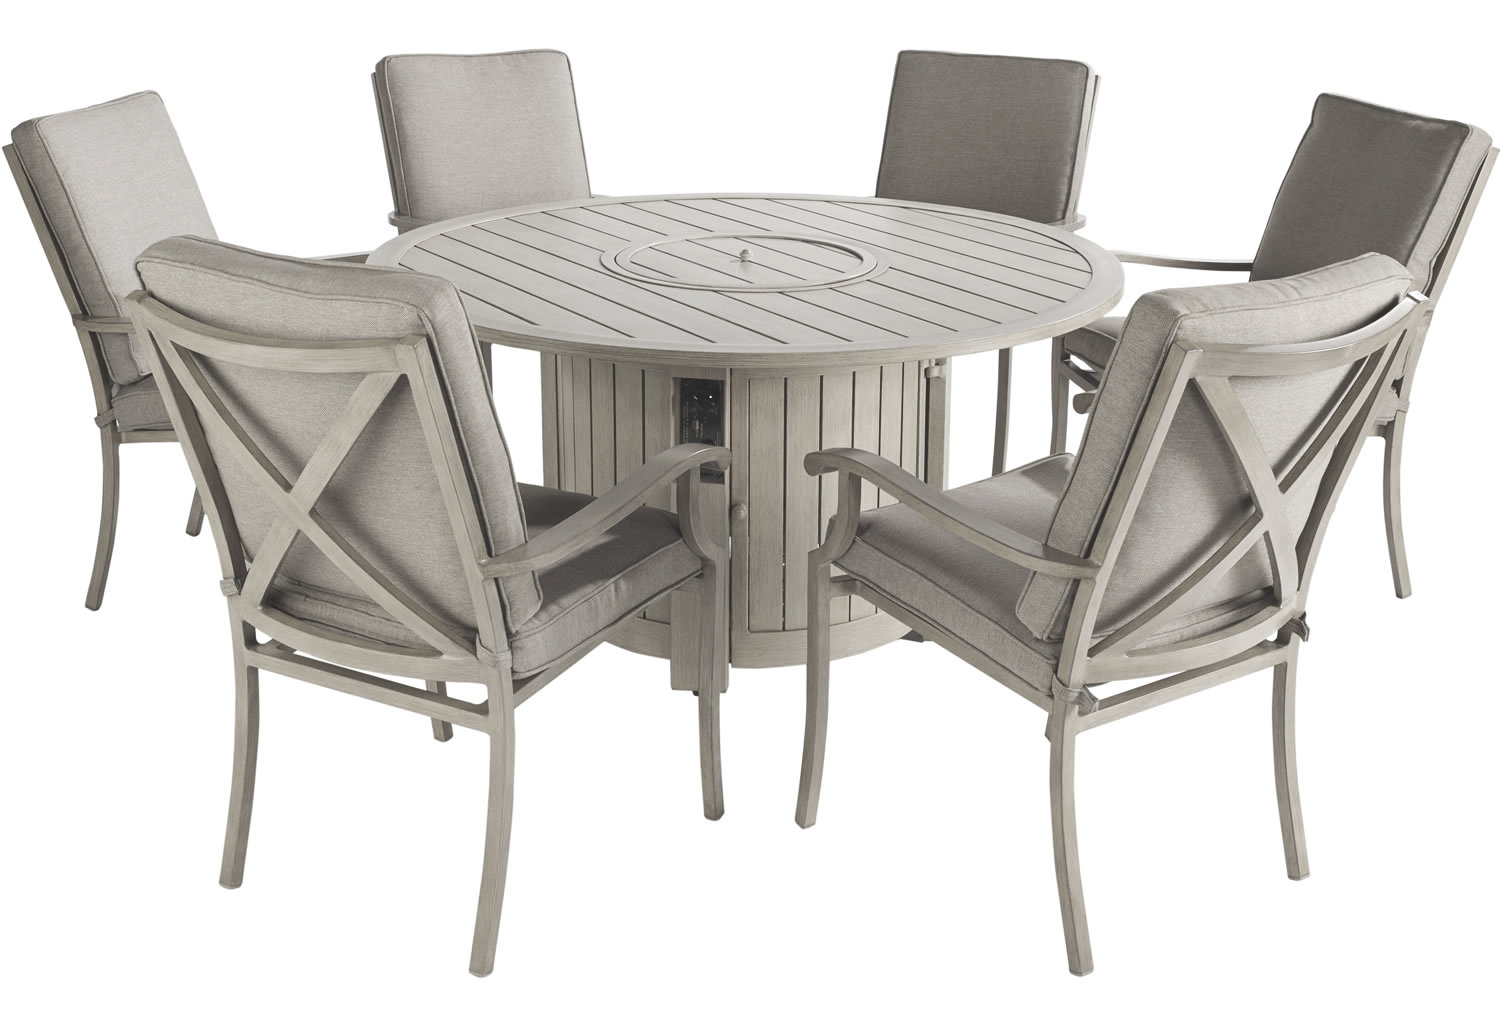 Portland Round 6 Seater Dining Set with Fire Pit 1290